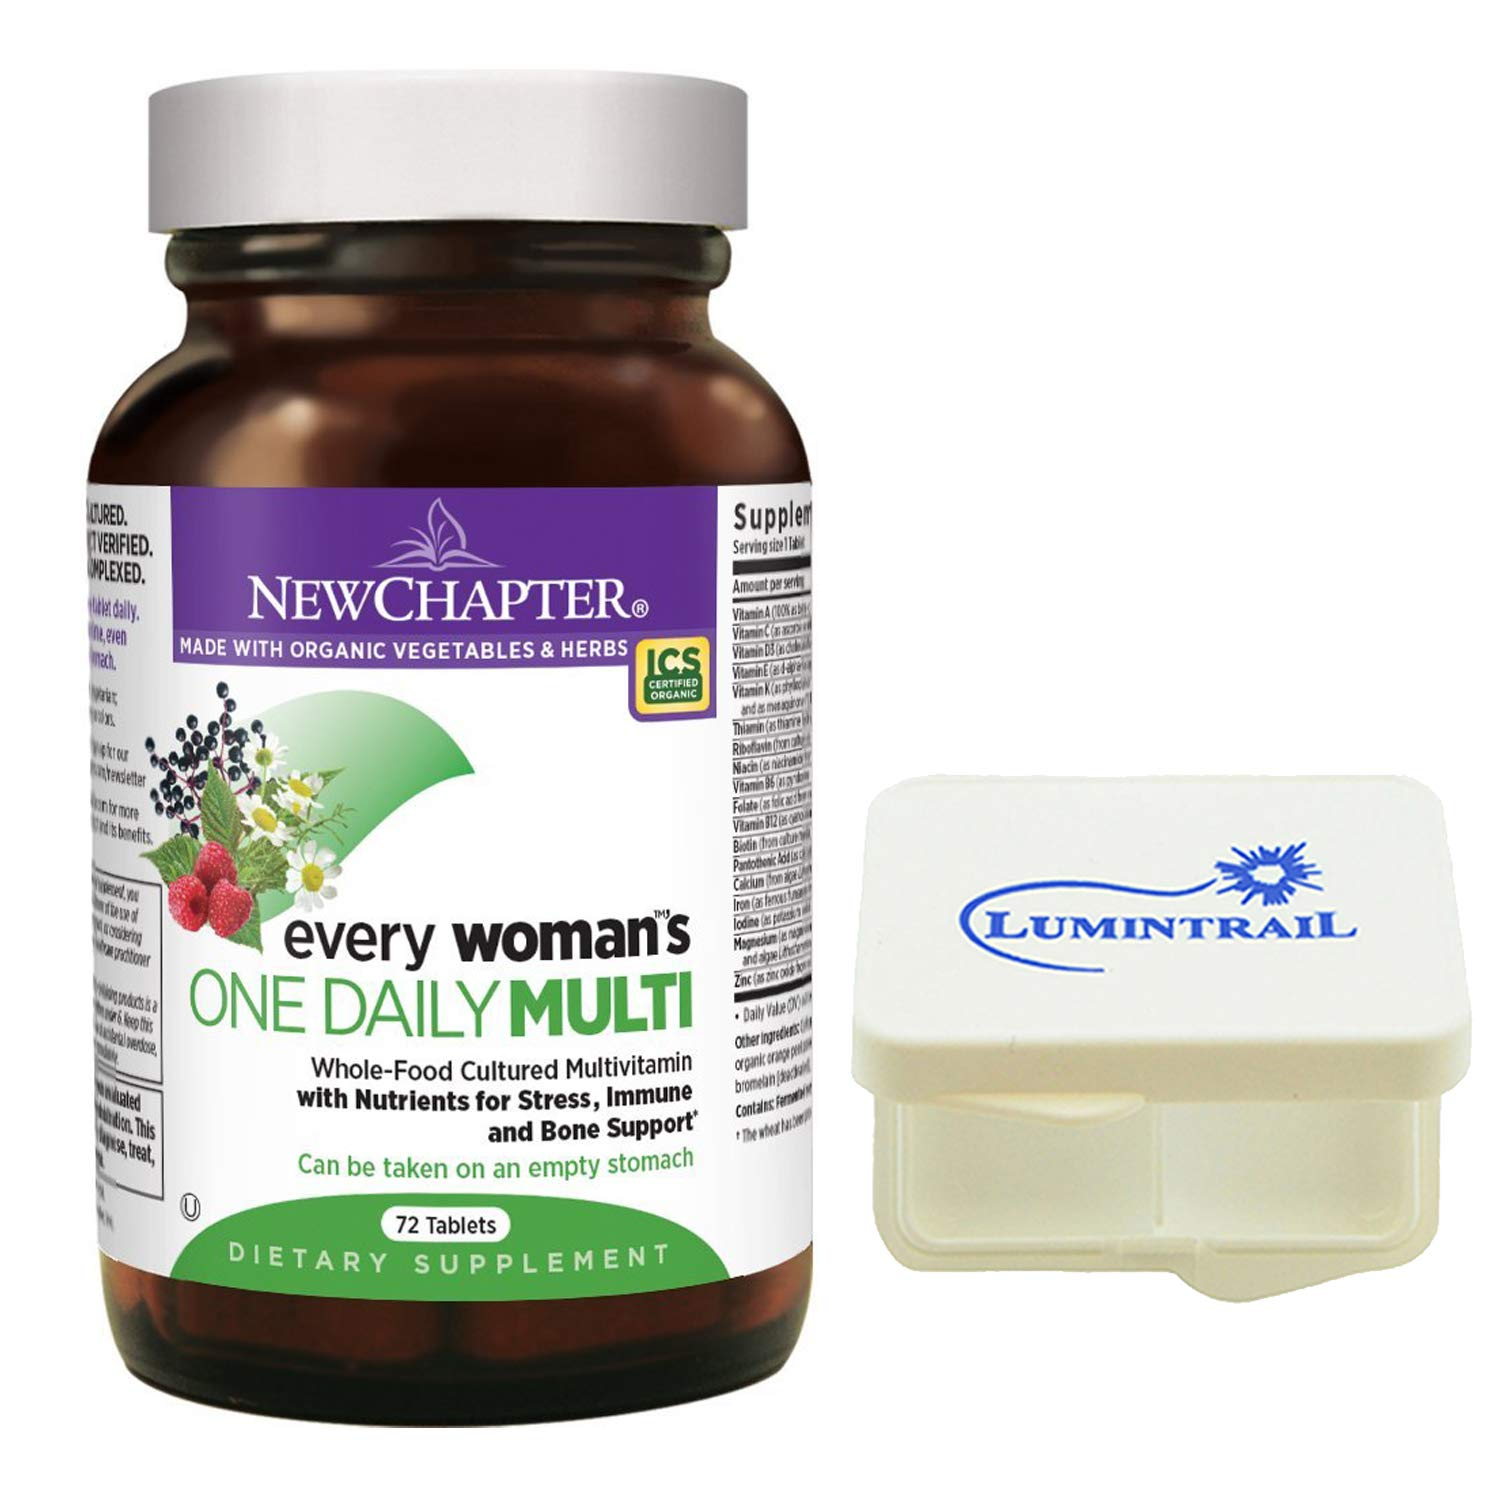 New Chapter Every Woman's One Daily, Women's Multivitamin with Probiotics, Iron, B Vitamins, Vitamin D3, 72 Tablets Bundle Includes a Lumintrail Pill Case